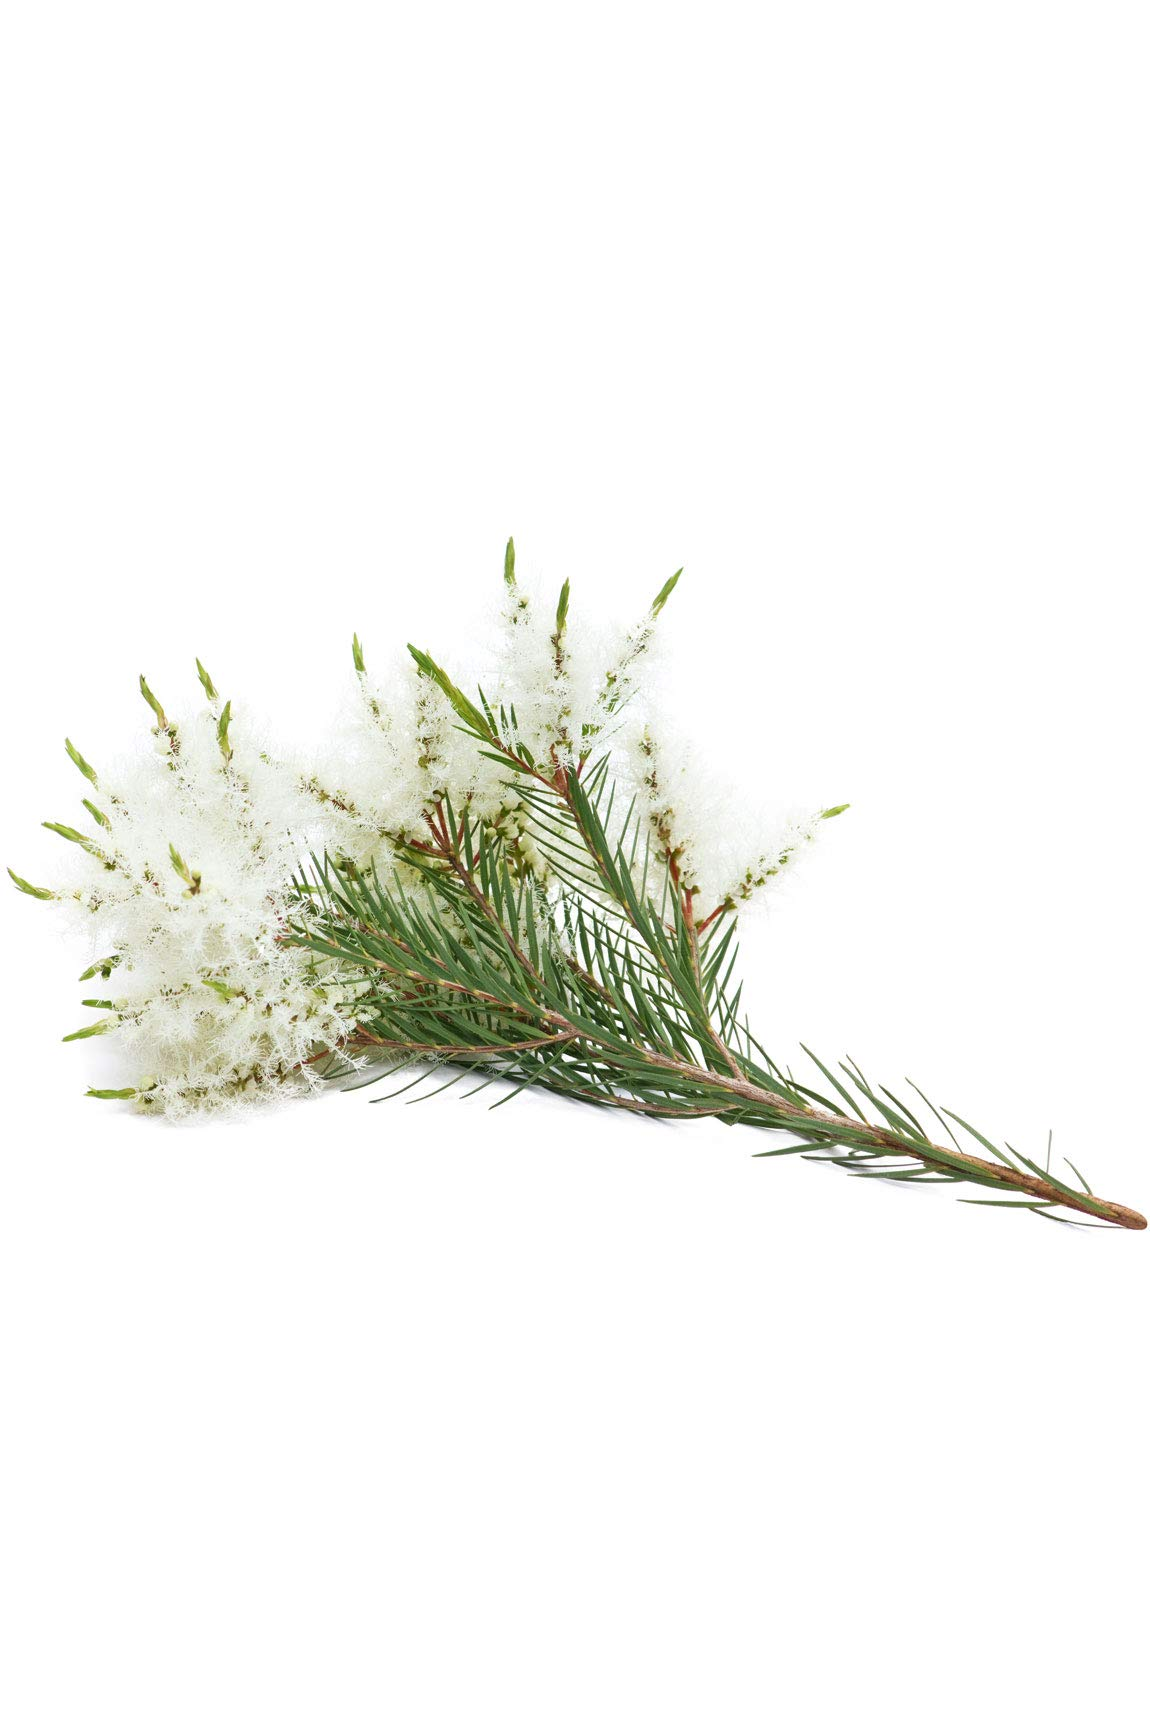 doTERRA - Melaleuca (Tea Tree) Essential Oil - Promotes Healthy Immune Function, Seasonal Protection, Cleansing and Rejuvenating Effect on Skin; for Diffusion, Internal, or Topical Use - 15 mL by DoTerra